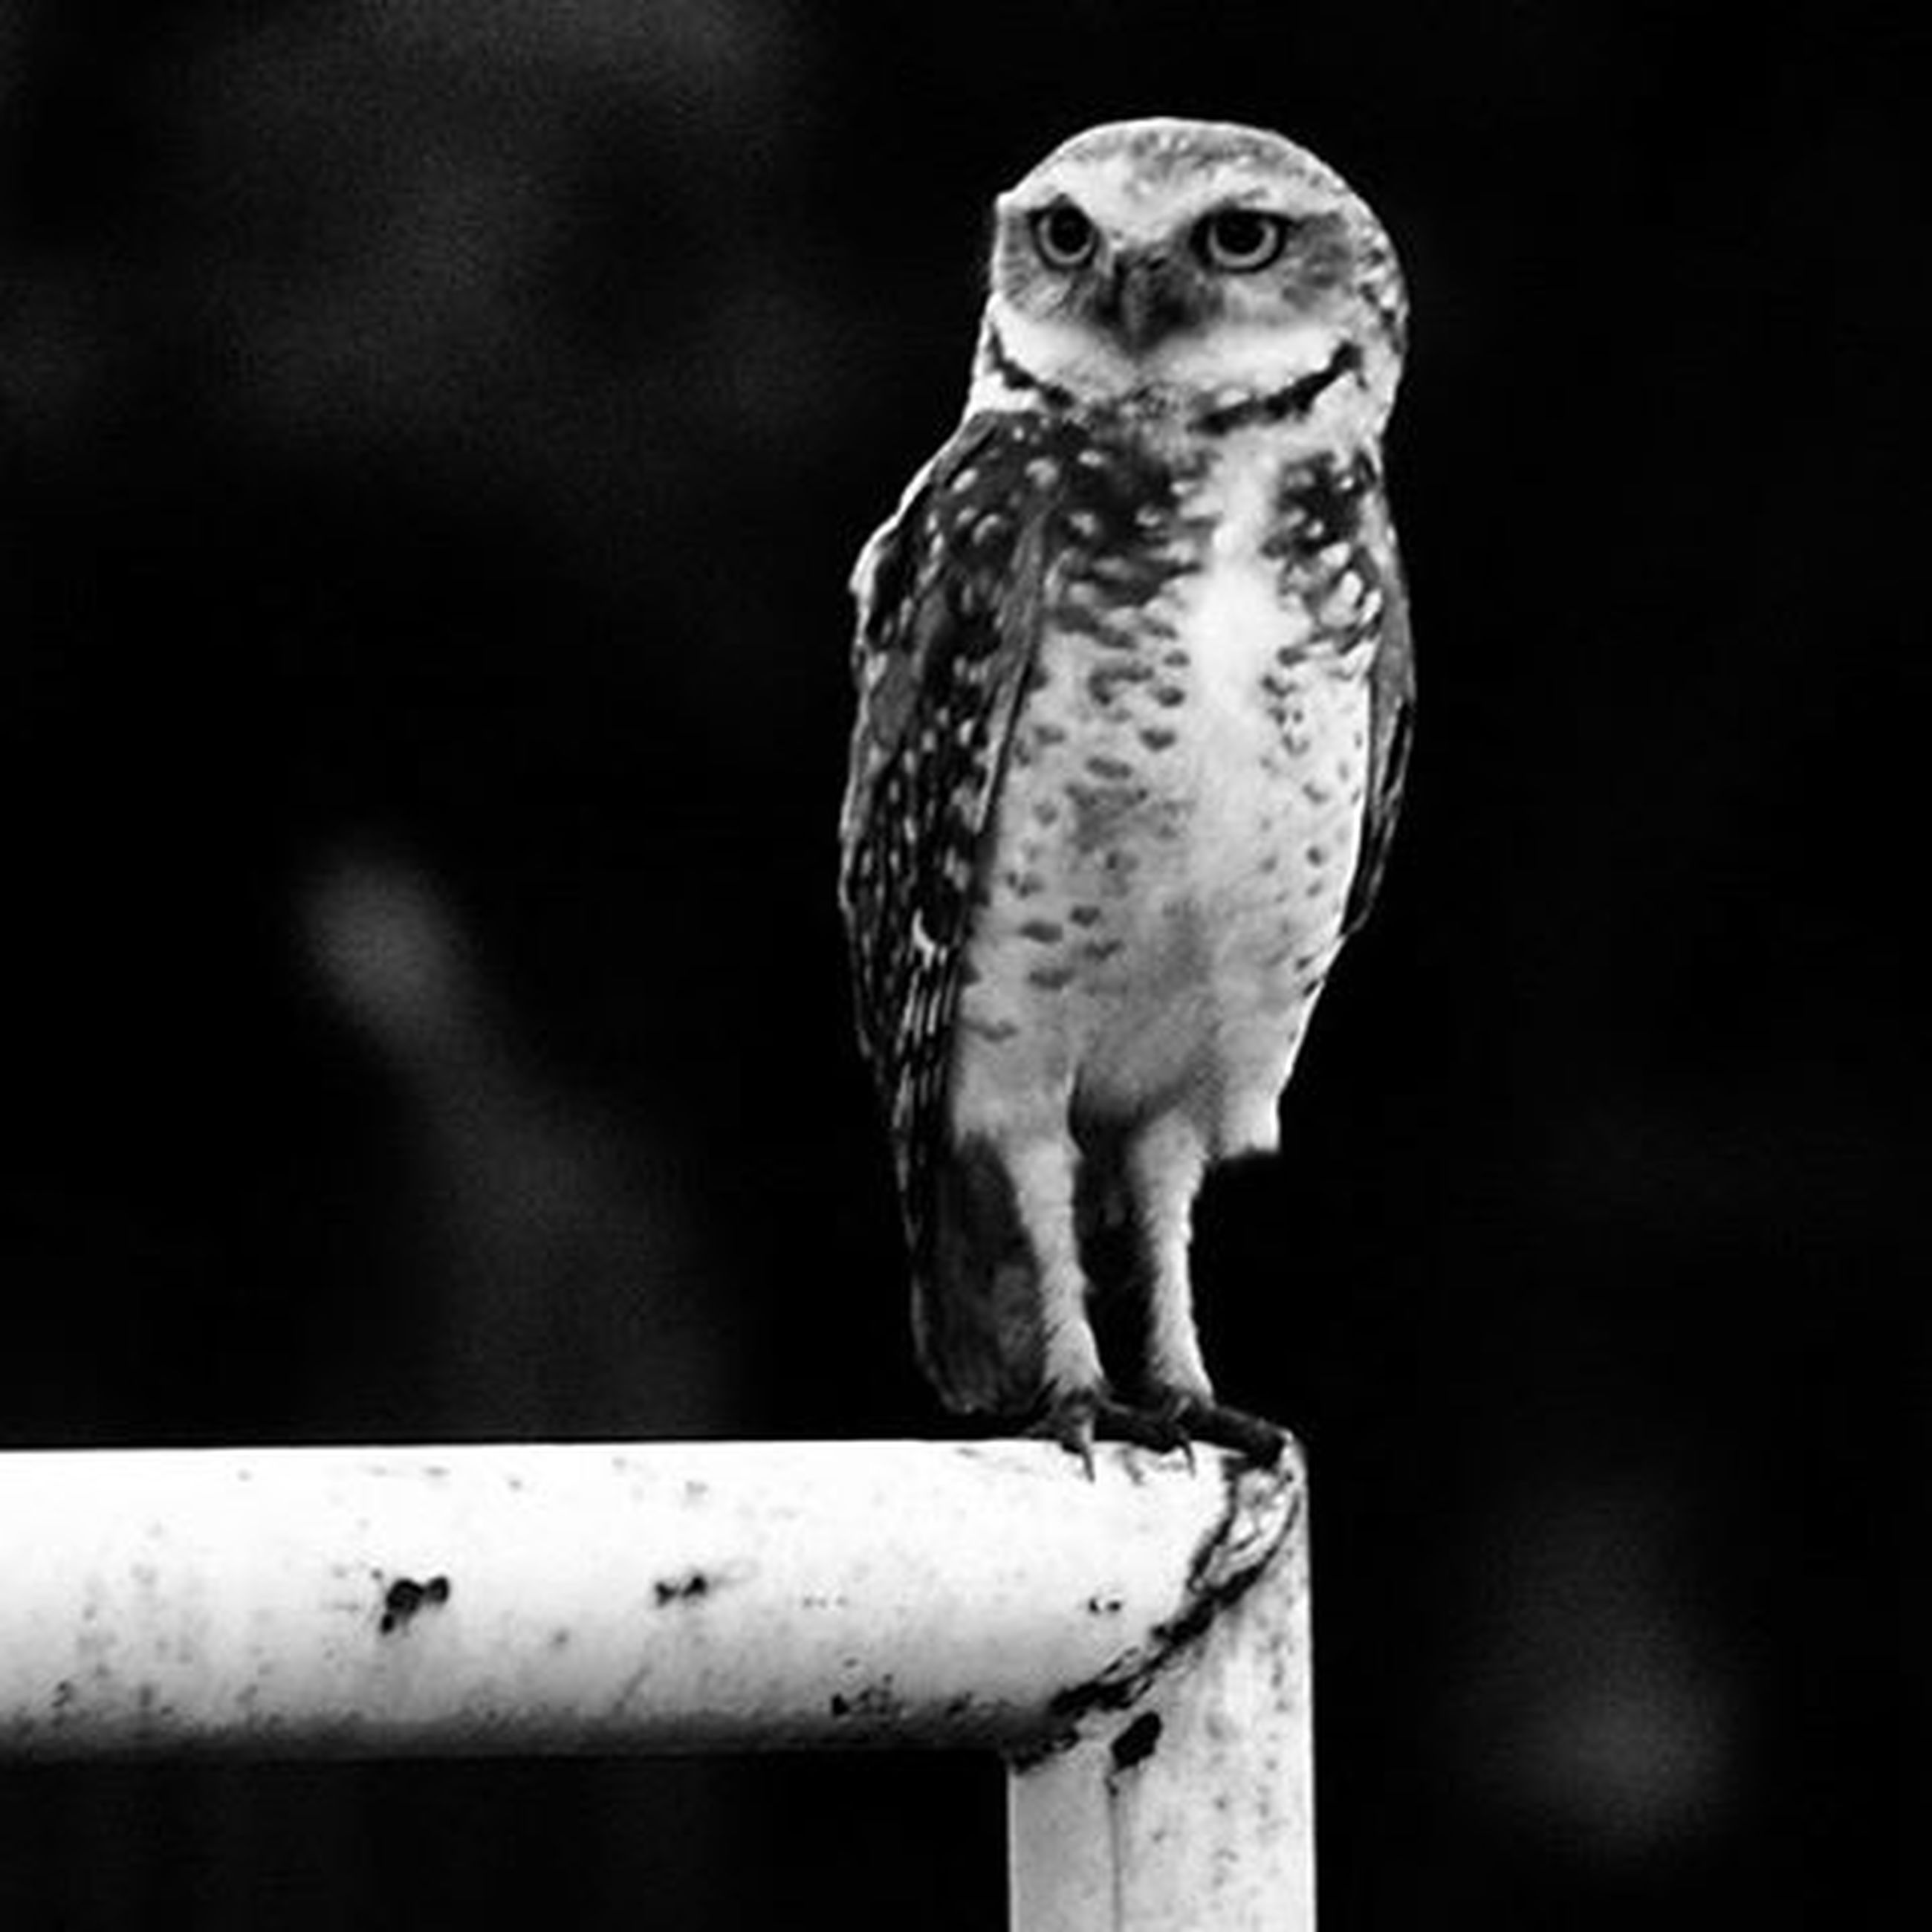 animal themes, one animal, animals in the wild, bird, wildlife, perching, bird of prey, focus on foreground, close-up, owl, beak, full length, nature, looking away, low angle view, outdoors, no people, side view, day, eagle - bird